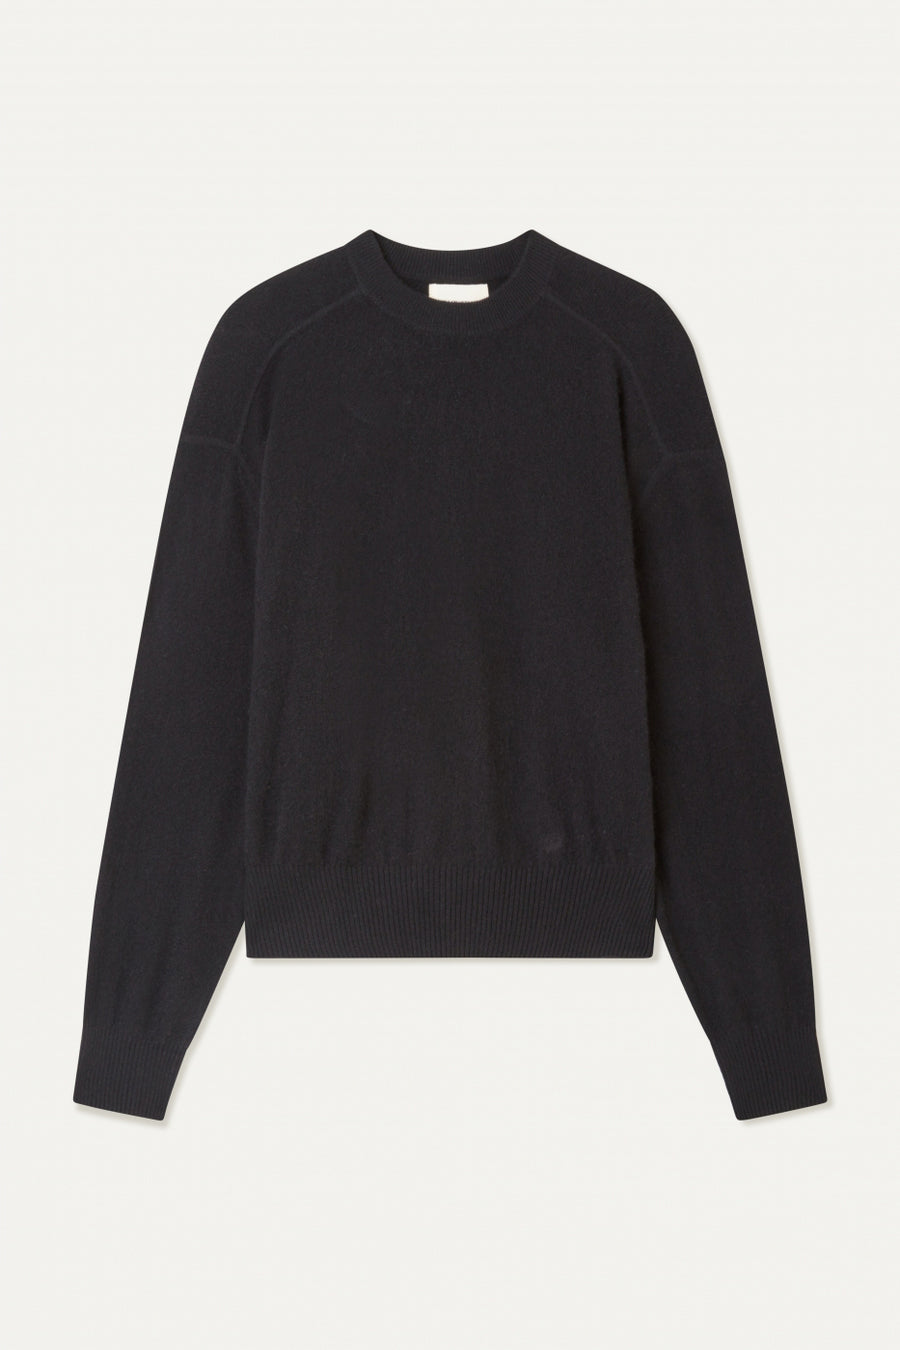 Arutua Sweater - Black